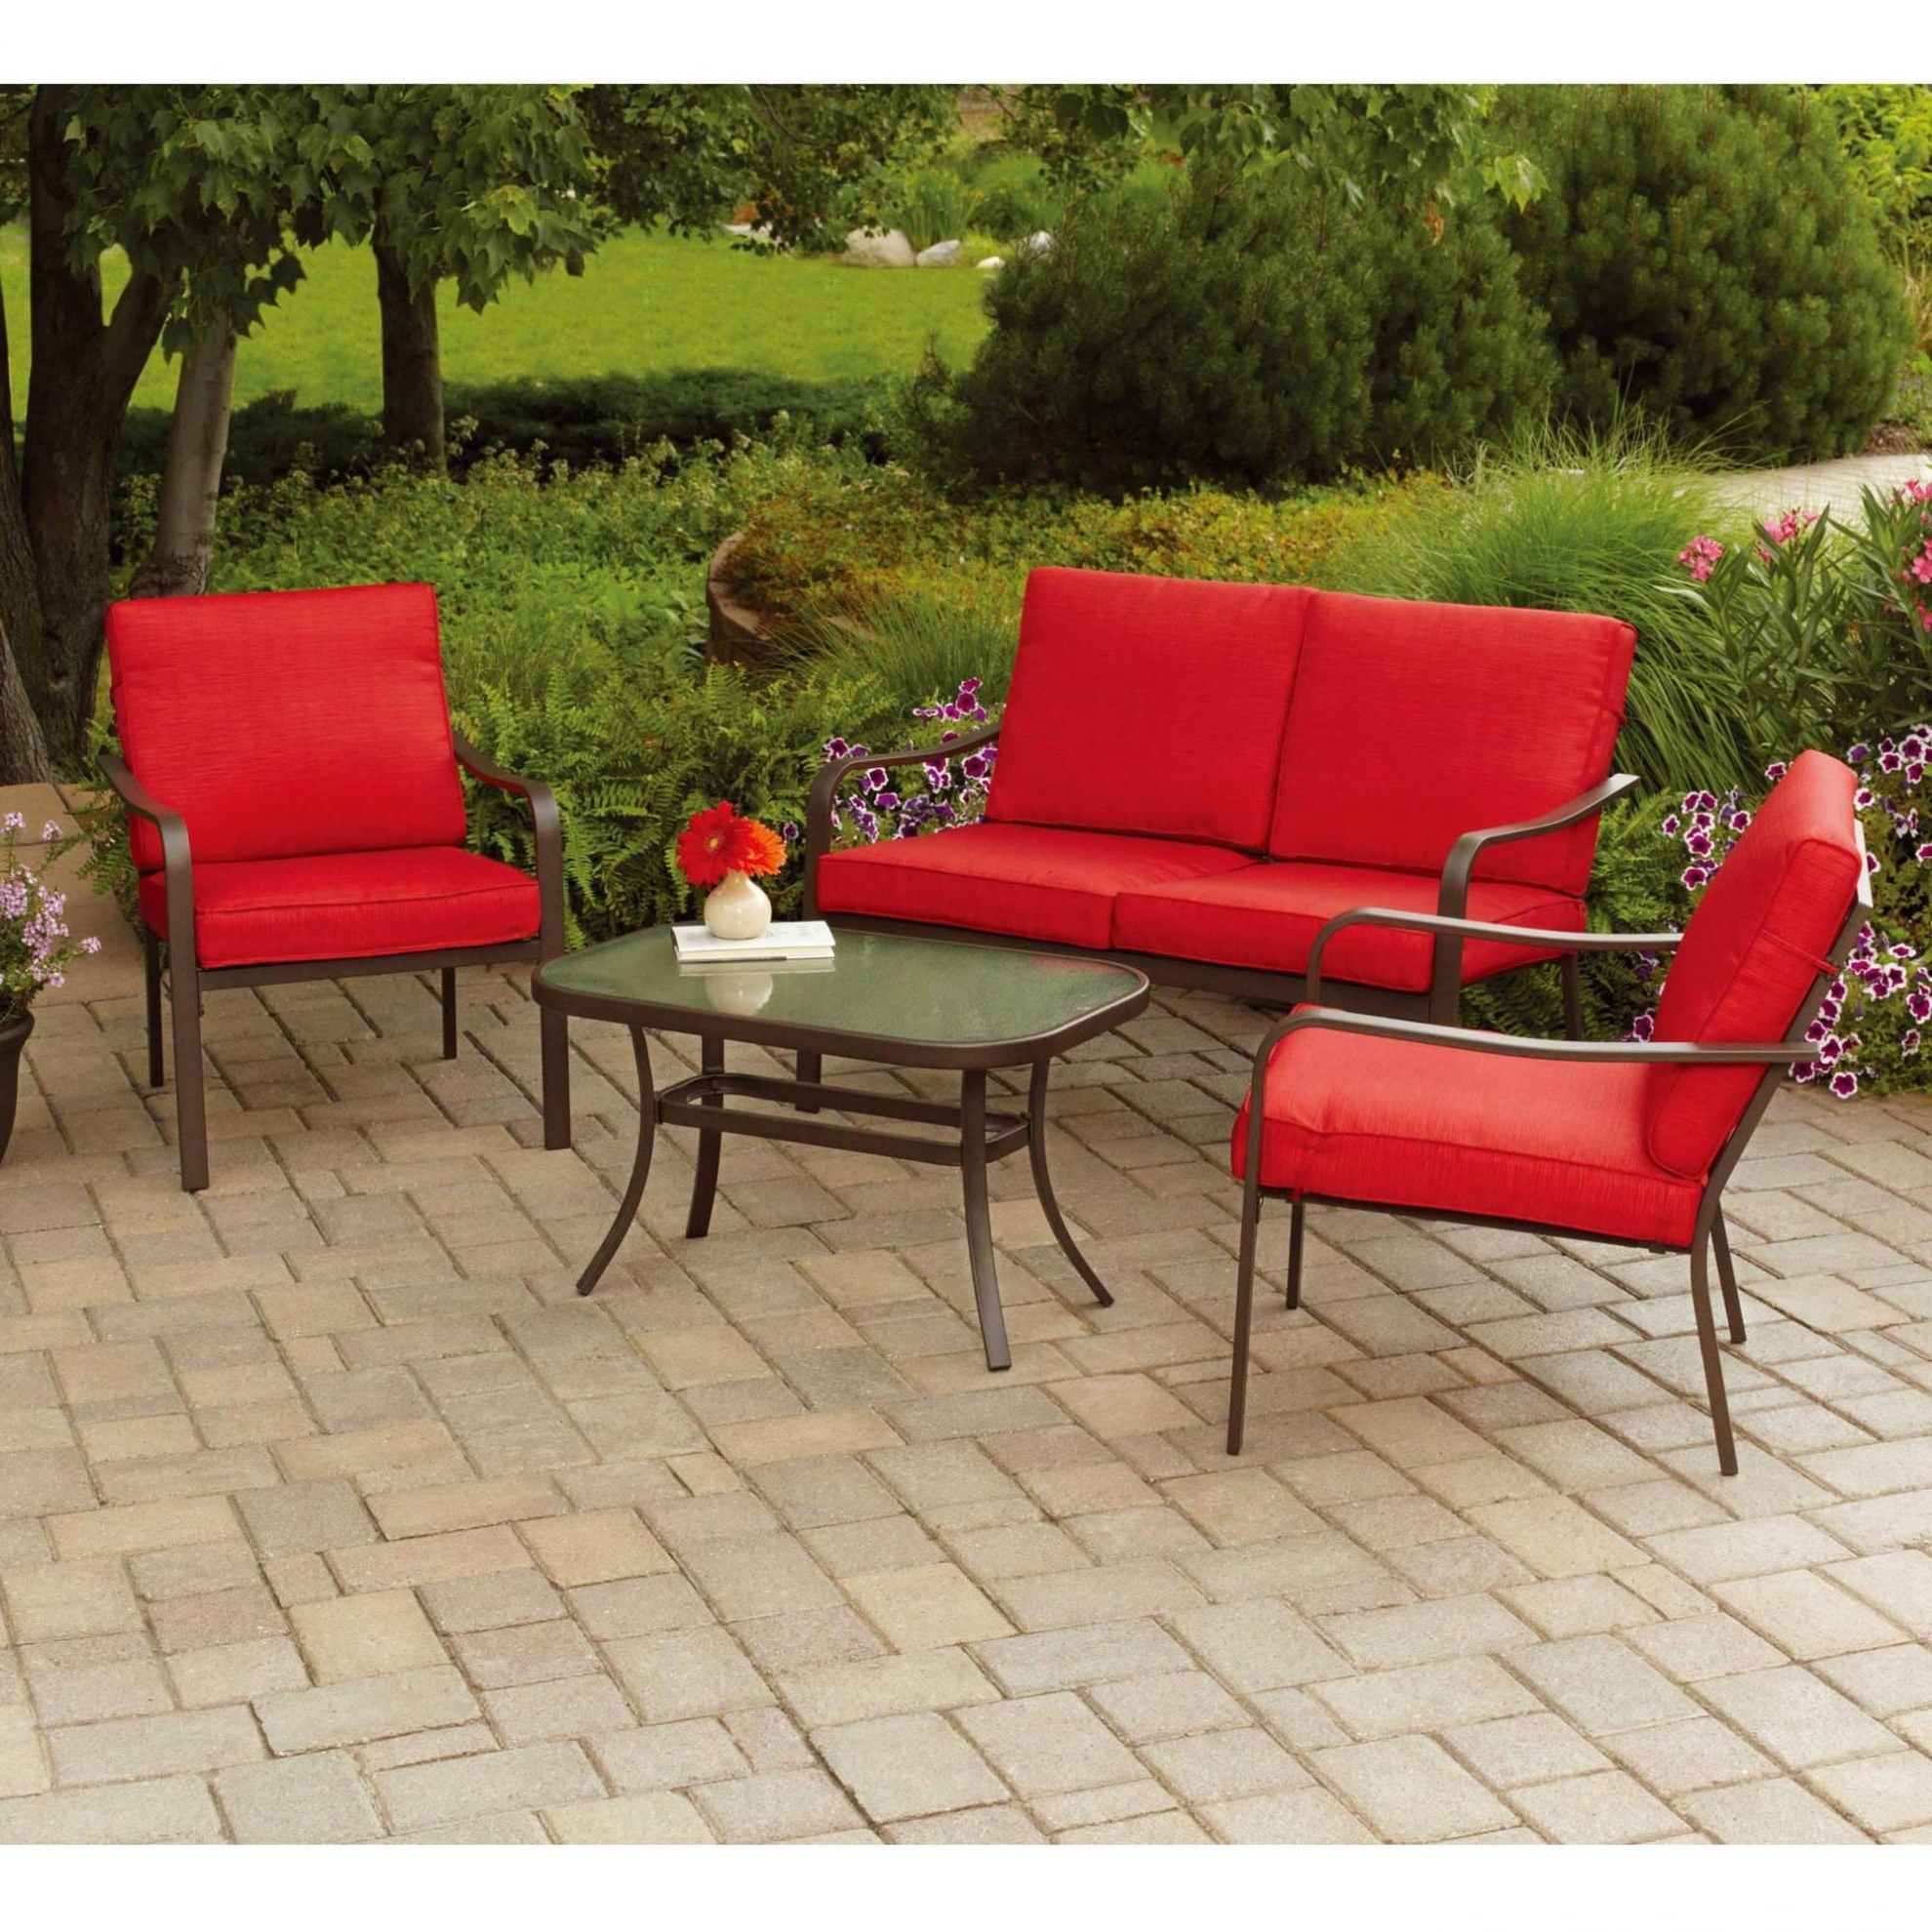 Newest Metal Patio Conversation Sets Inside Good Metal Patio Furniture Clearance Photo Gallery #6 Wicker Patio (View 9 of 15)